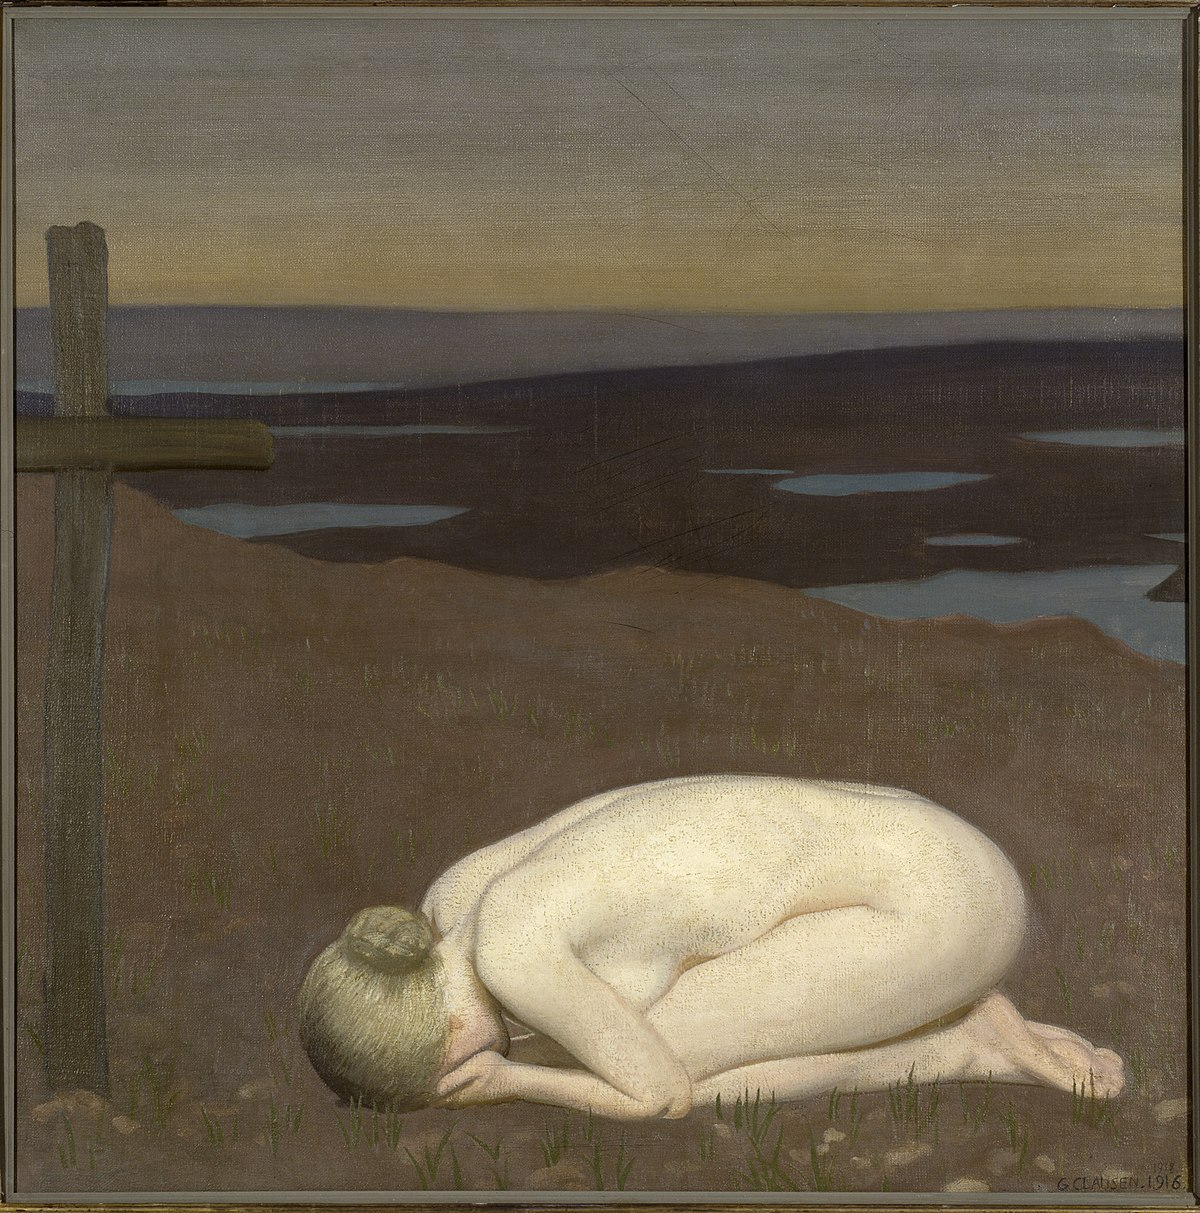 George Clausen, 'Youth Mourning', 1916,  oil on canvas,  914* 914 mm, War Imperial  Museum, London.